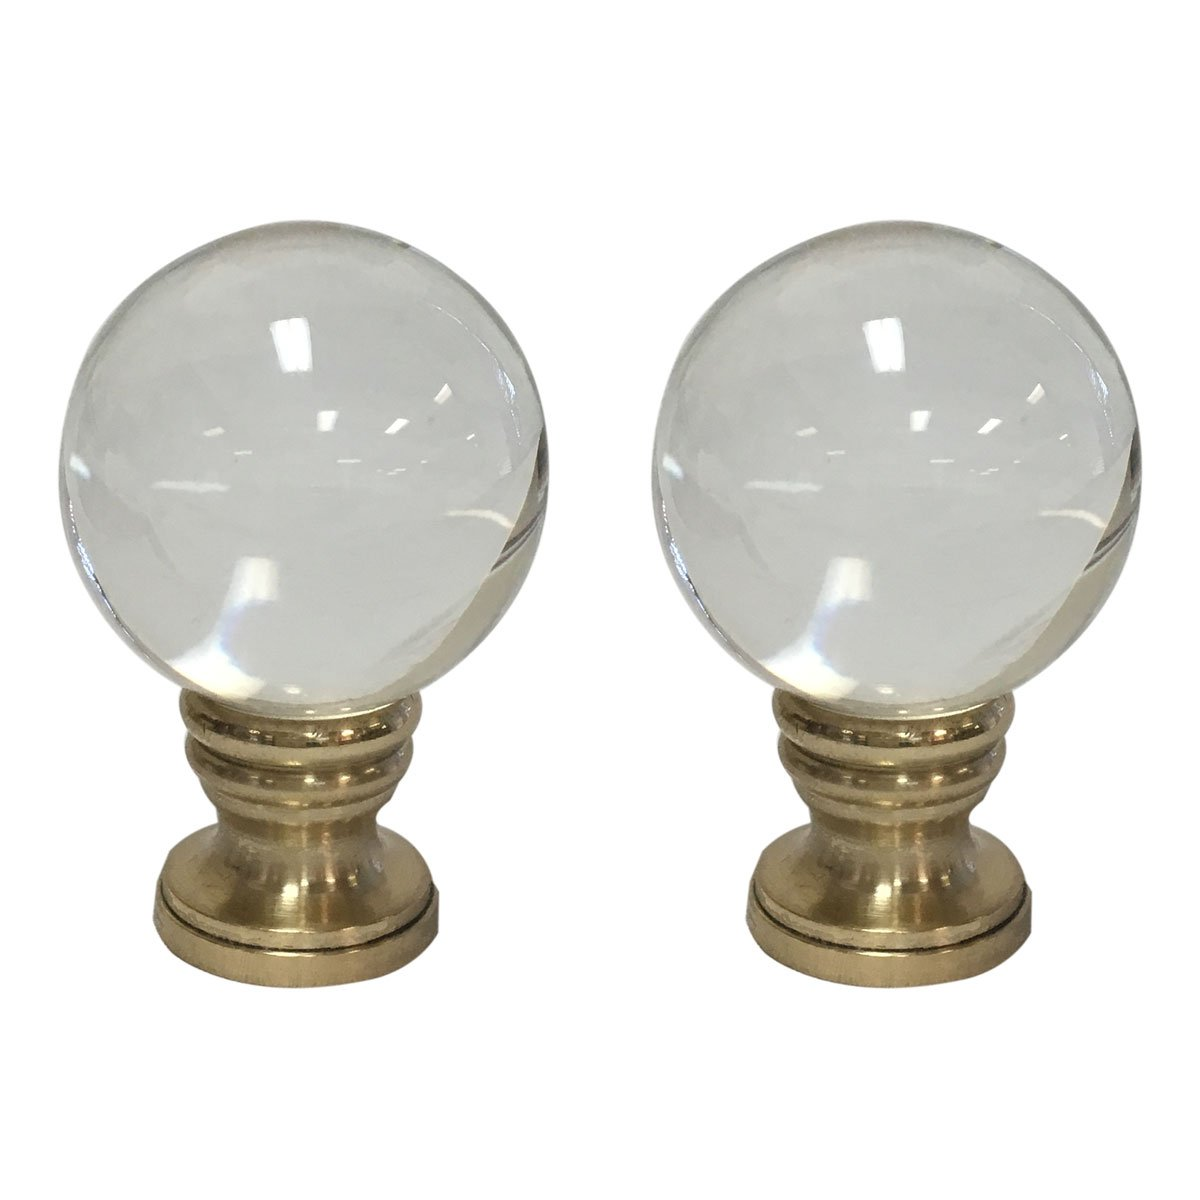 Royal Designs Clear Crystal Ball Lamp Finial with Polished Brass Base - Set of 2